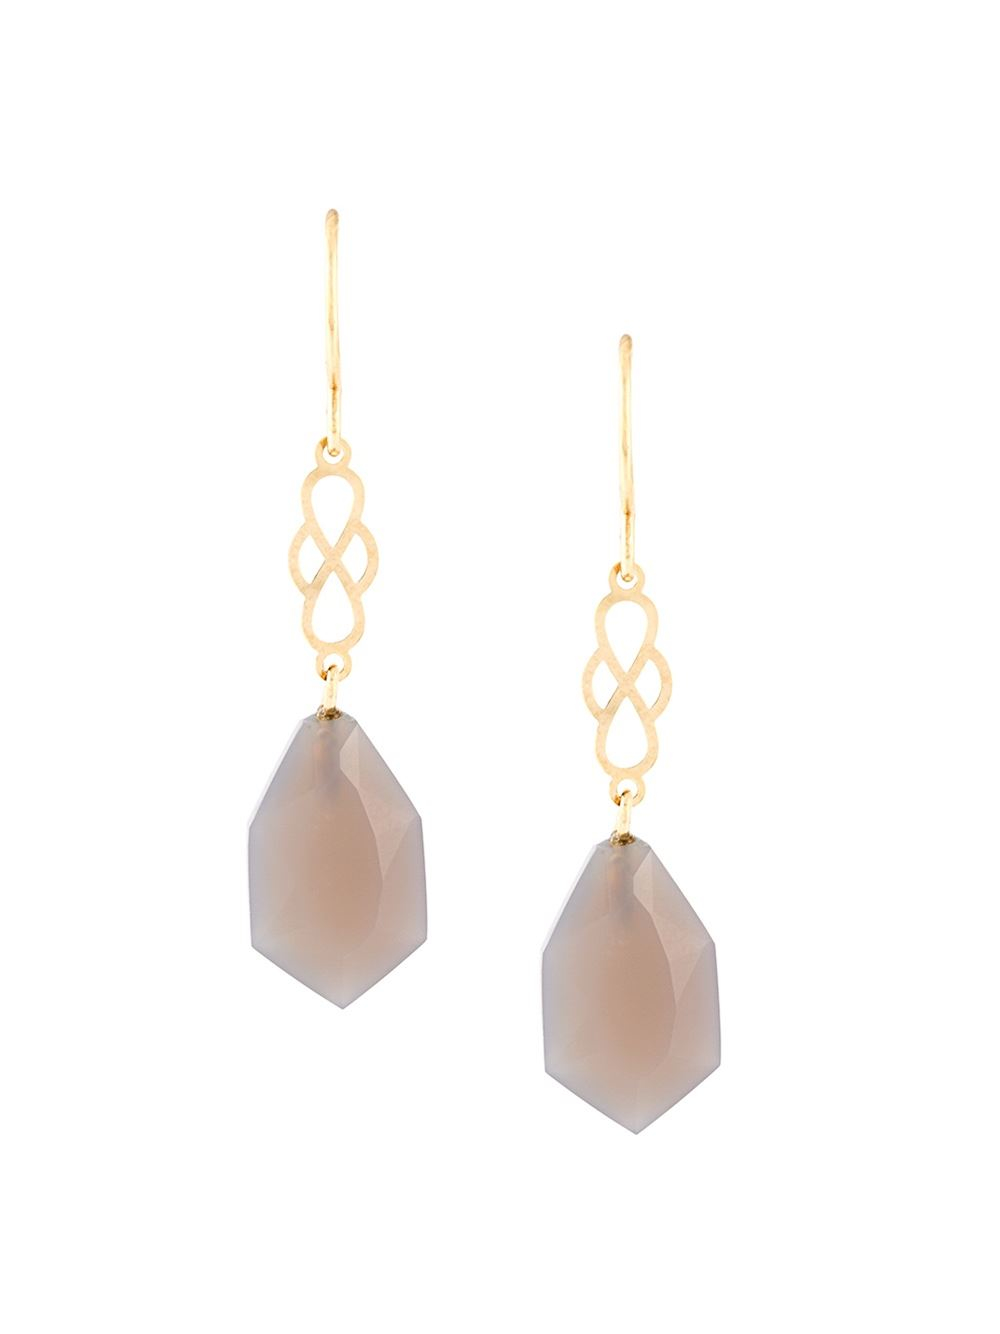 wouters my favourite grey agate earrings in